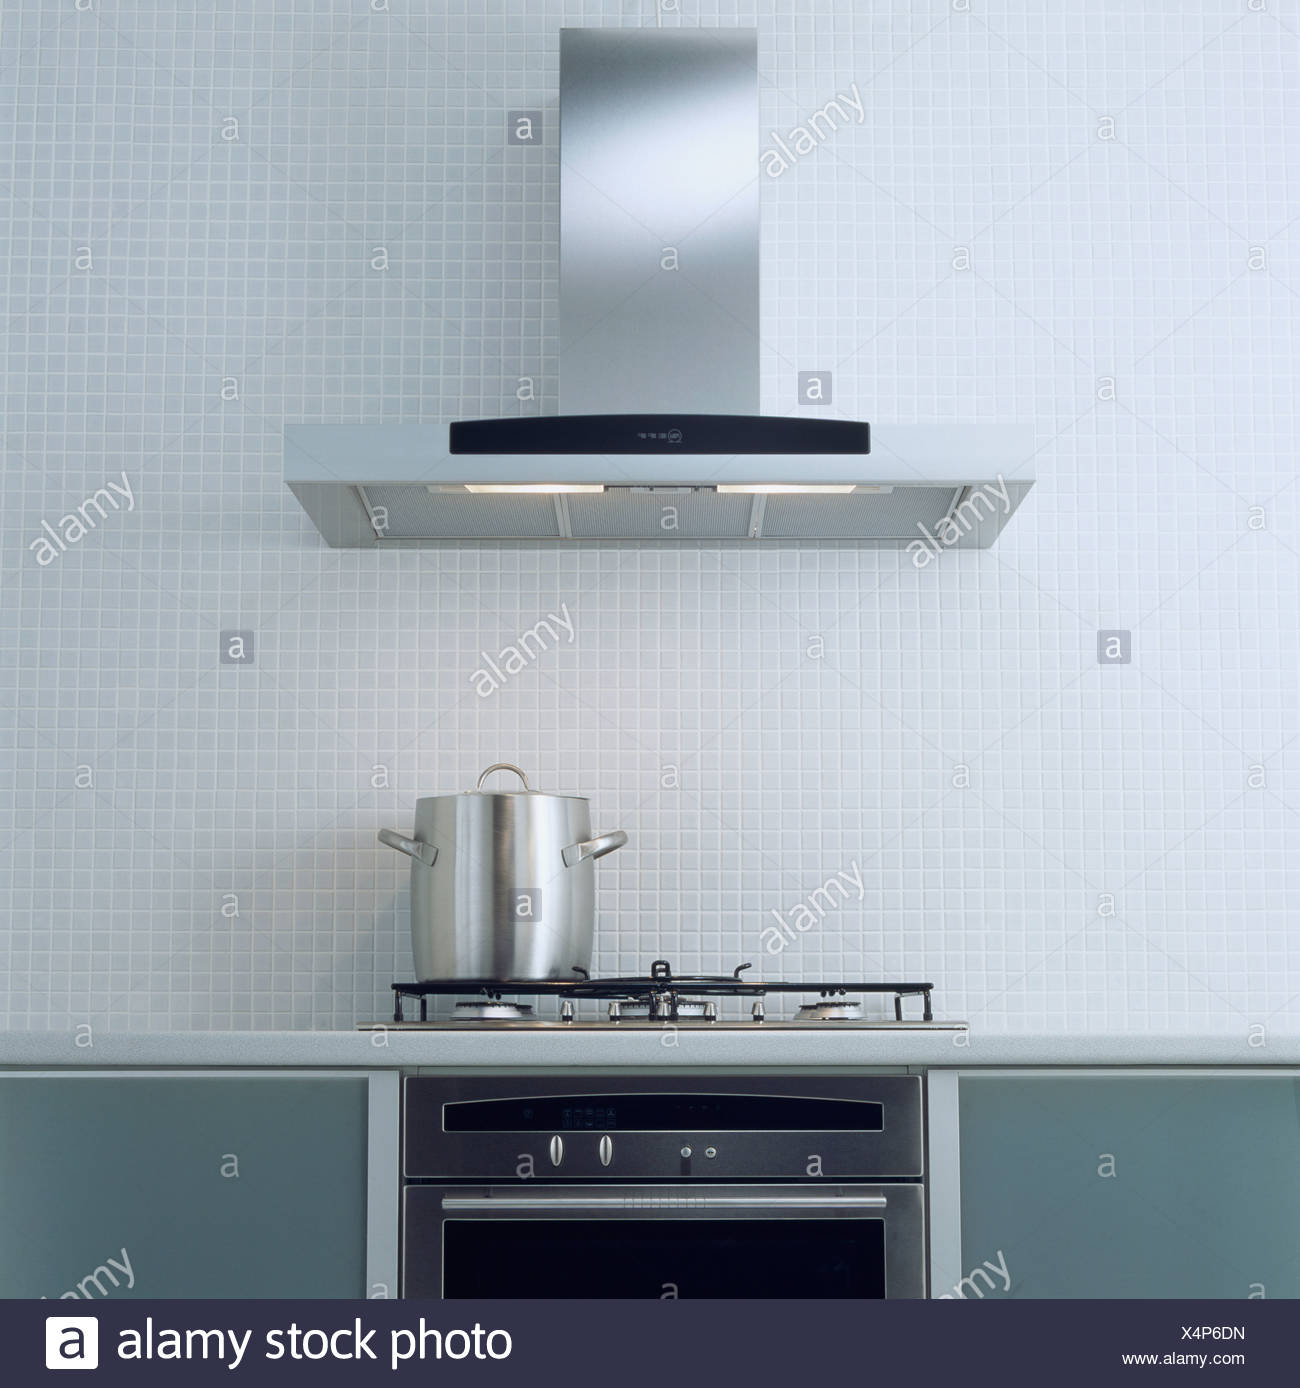 Stainless Steel Extractor Fan Above Pan On Hob In Modern Kitchen Stock Photo Alamy